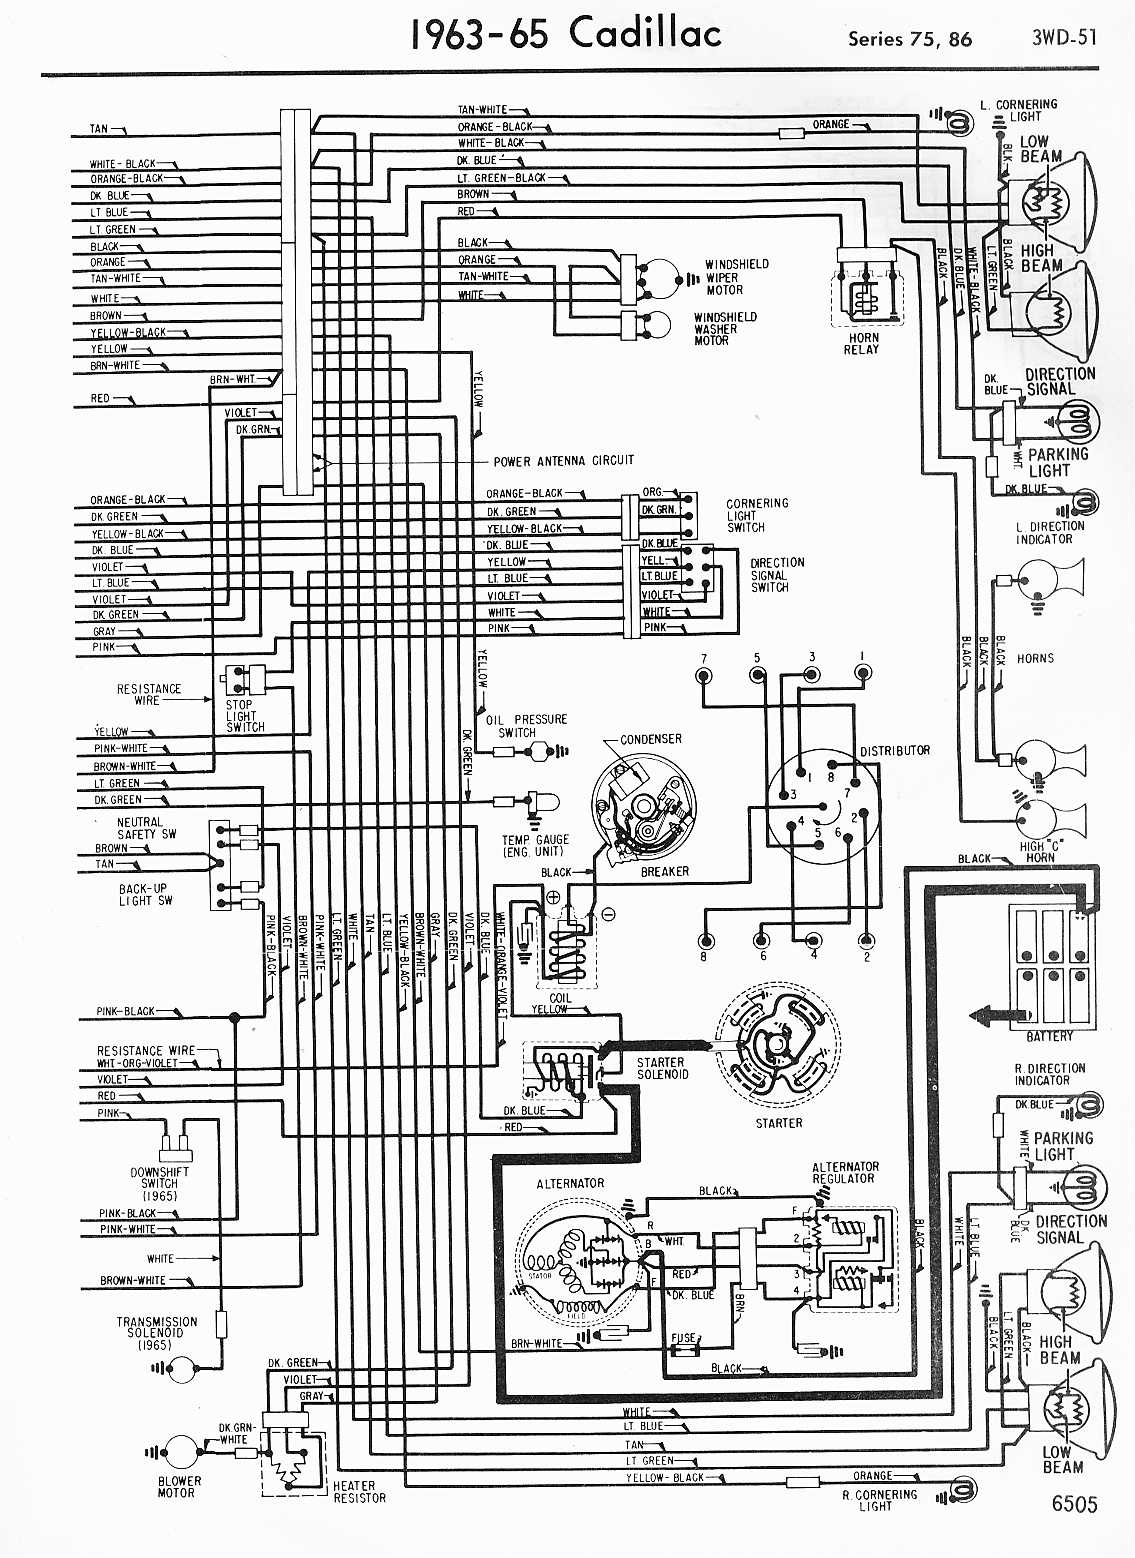 [WQZT_9871]  Cadillac Wiring Diagrams: 1957-1965 | 1966 Cadillac Alternator Wiring Diagram |  | The Old Car Manual Project